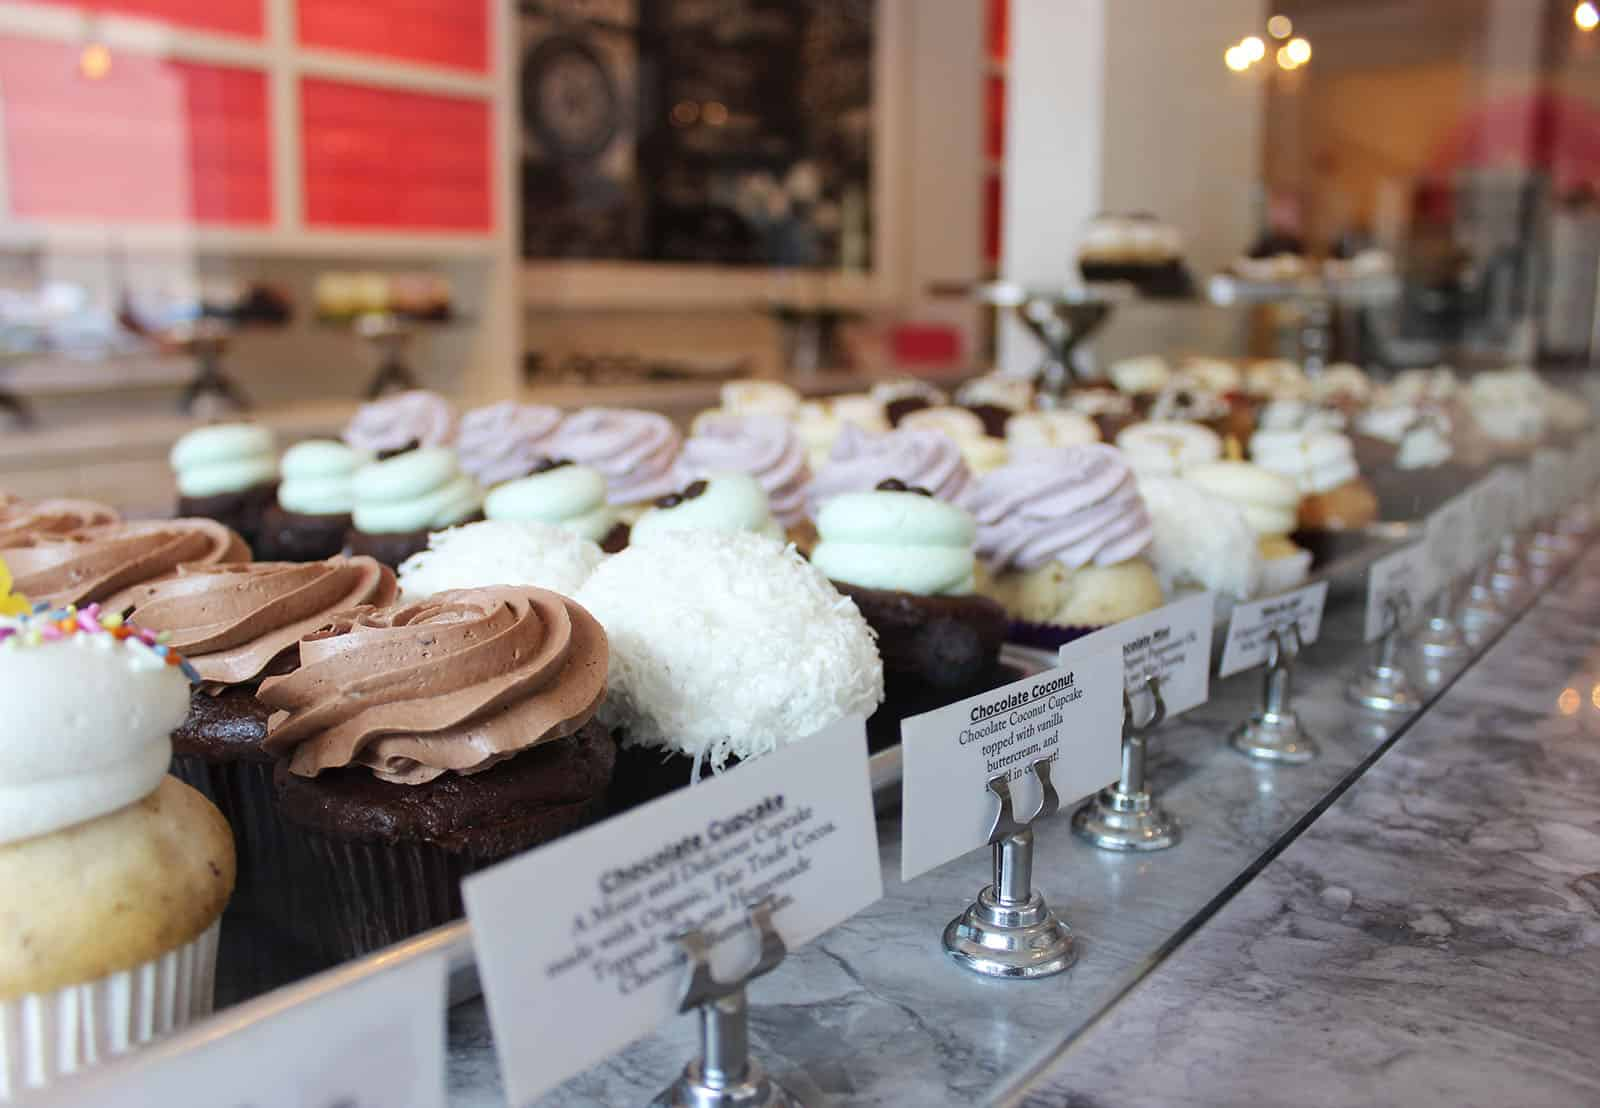 Kelly's Bake Shoppe – My Favorite Vegan Bakery in the World